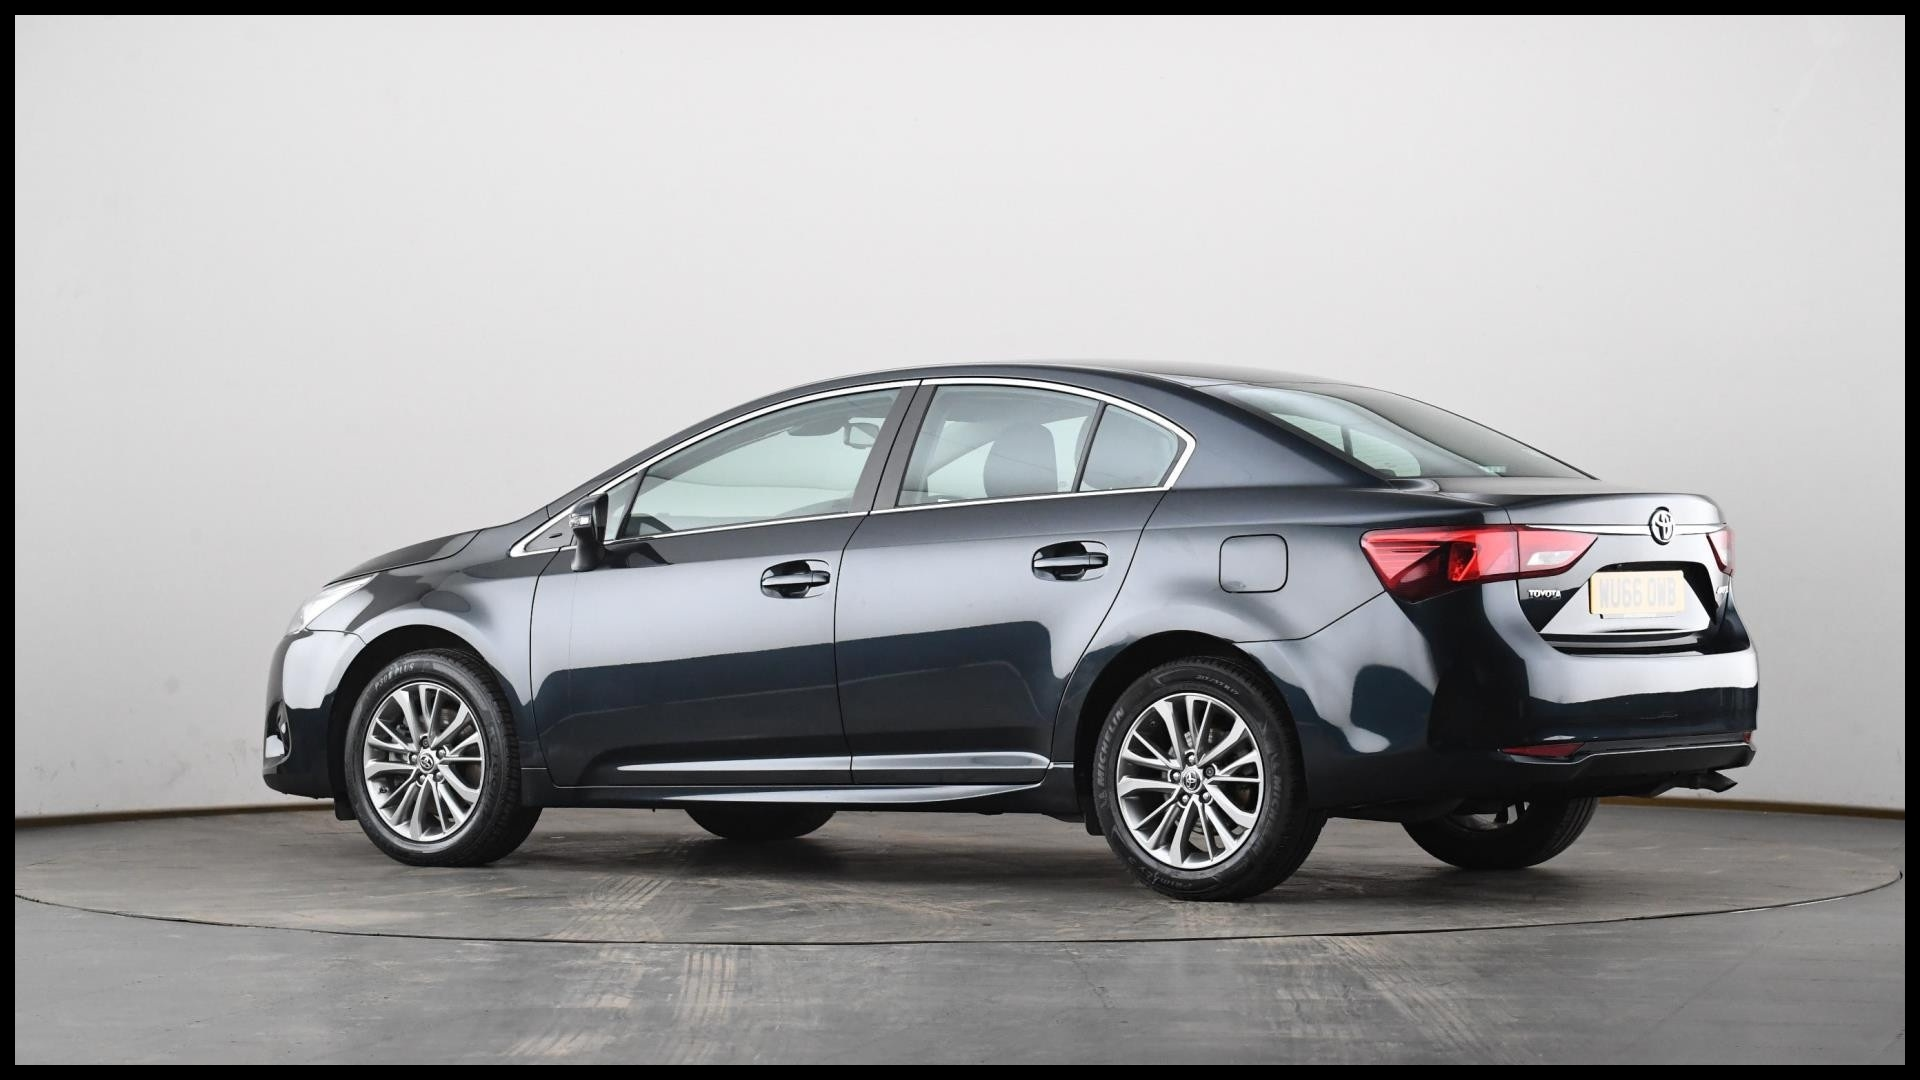 Camry toyota 2018 Review and Specs Hot New Camry 2018 2018 toyota Grey Best Used toyota